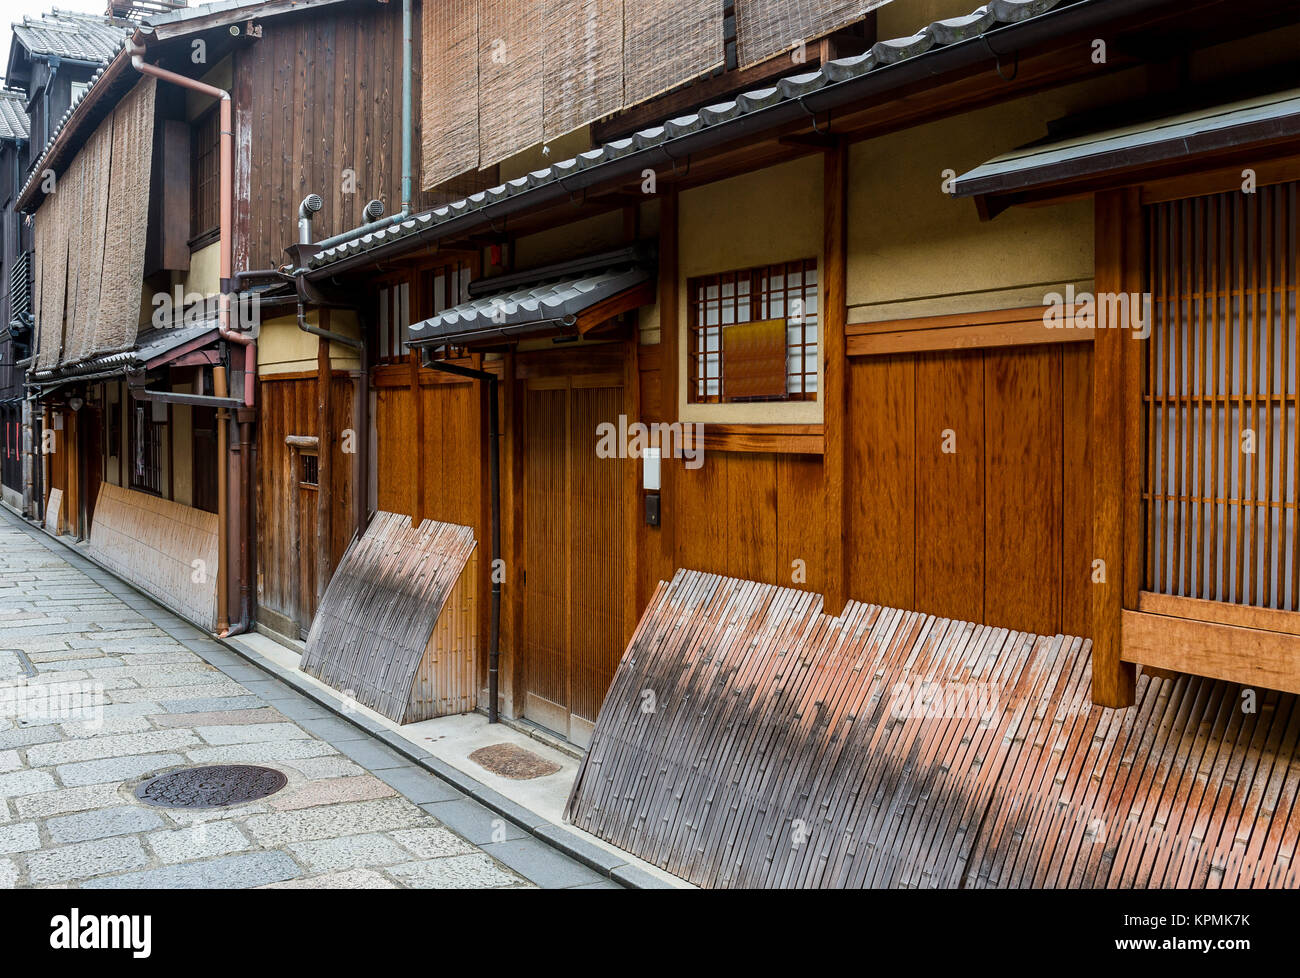 Japanese stockfotos japanese bilder seite 33 alamy - Traditionelle japanische architektur ...